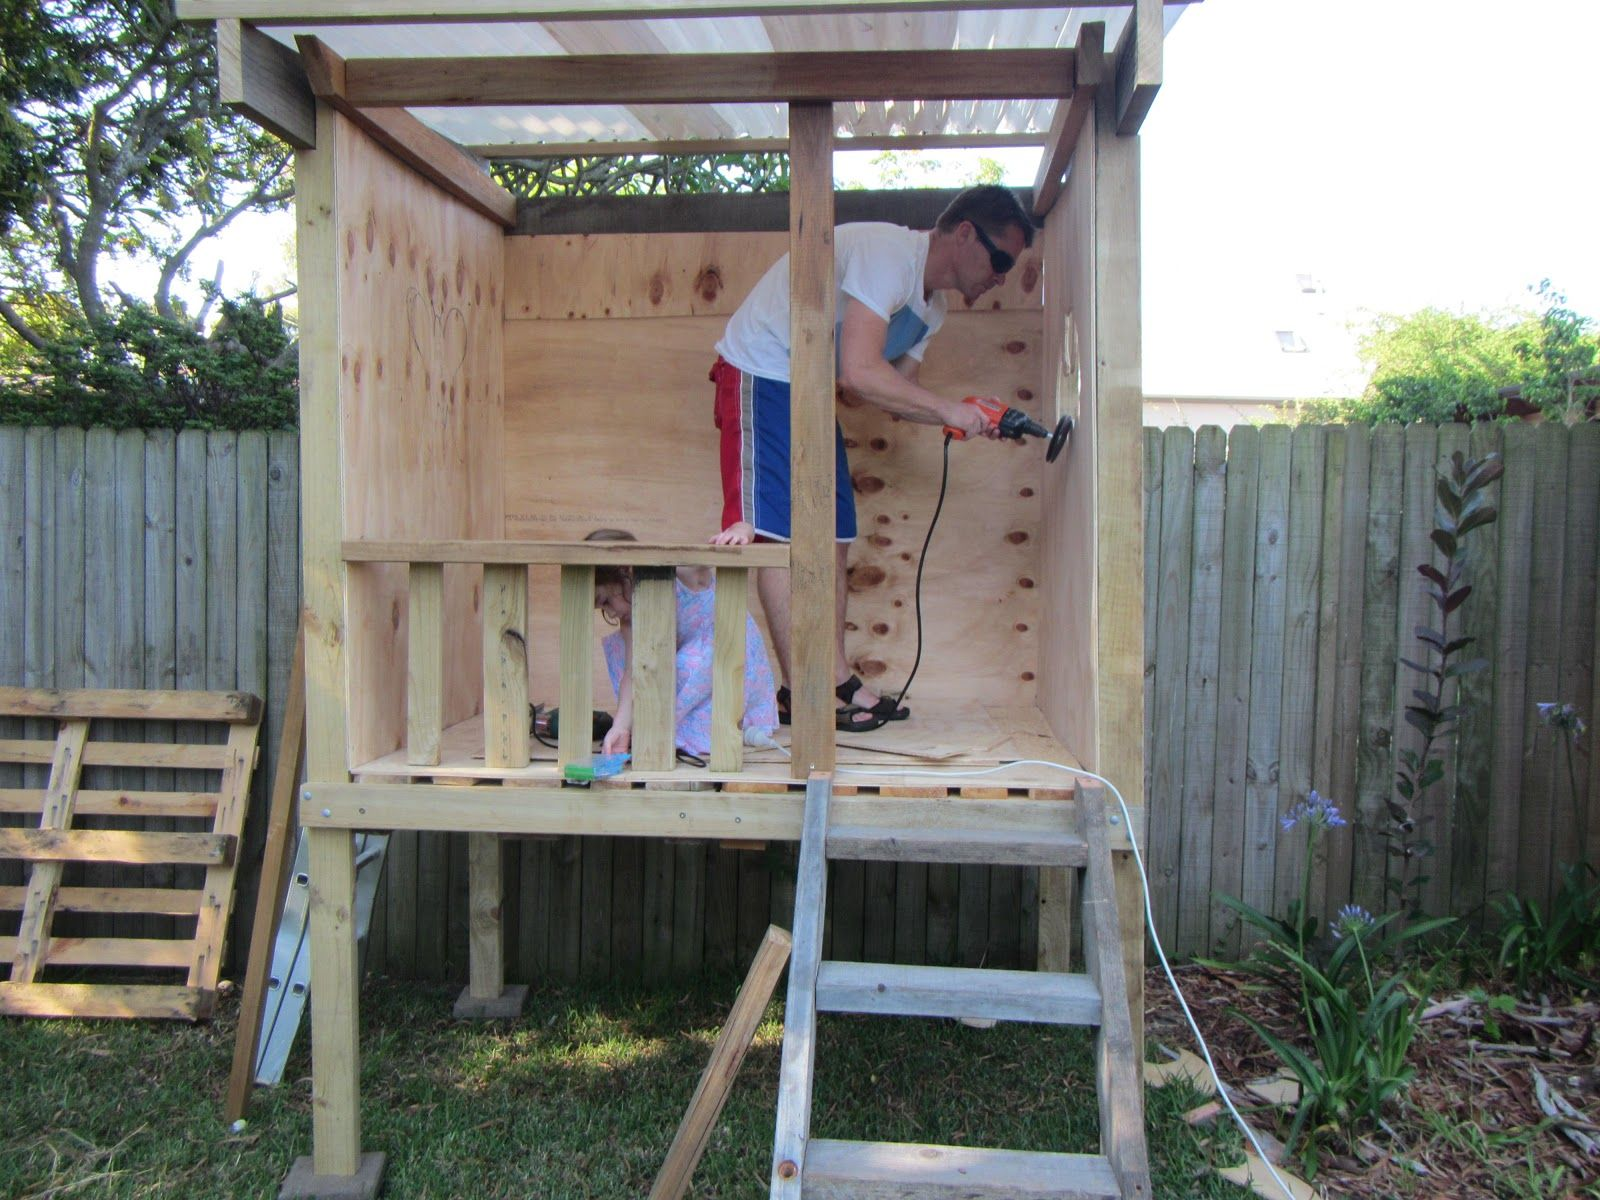 how to build a cubby house for kids - Google Search